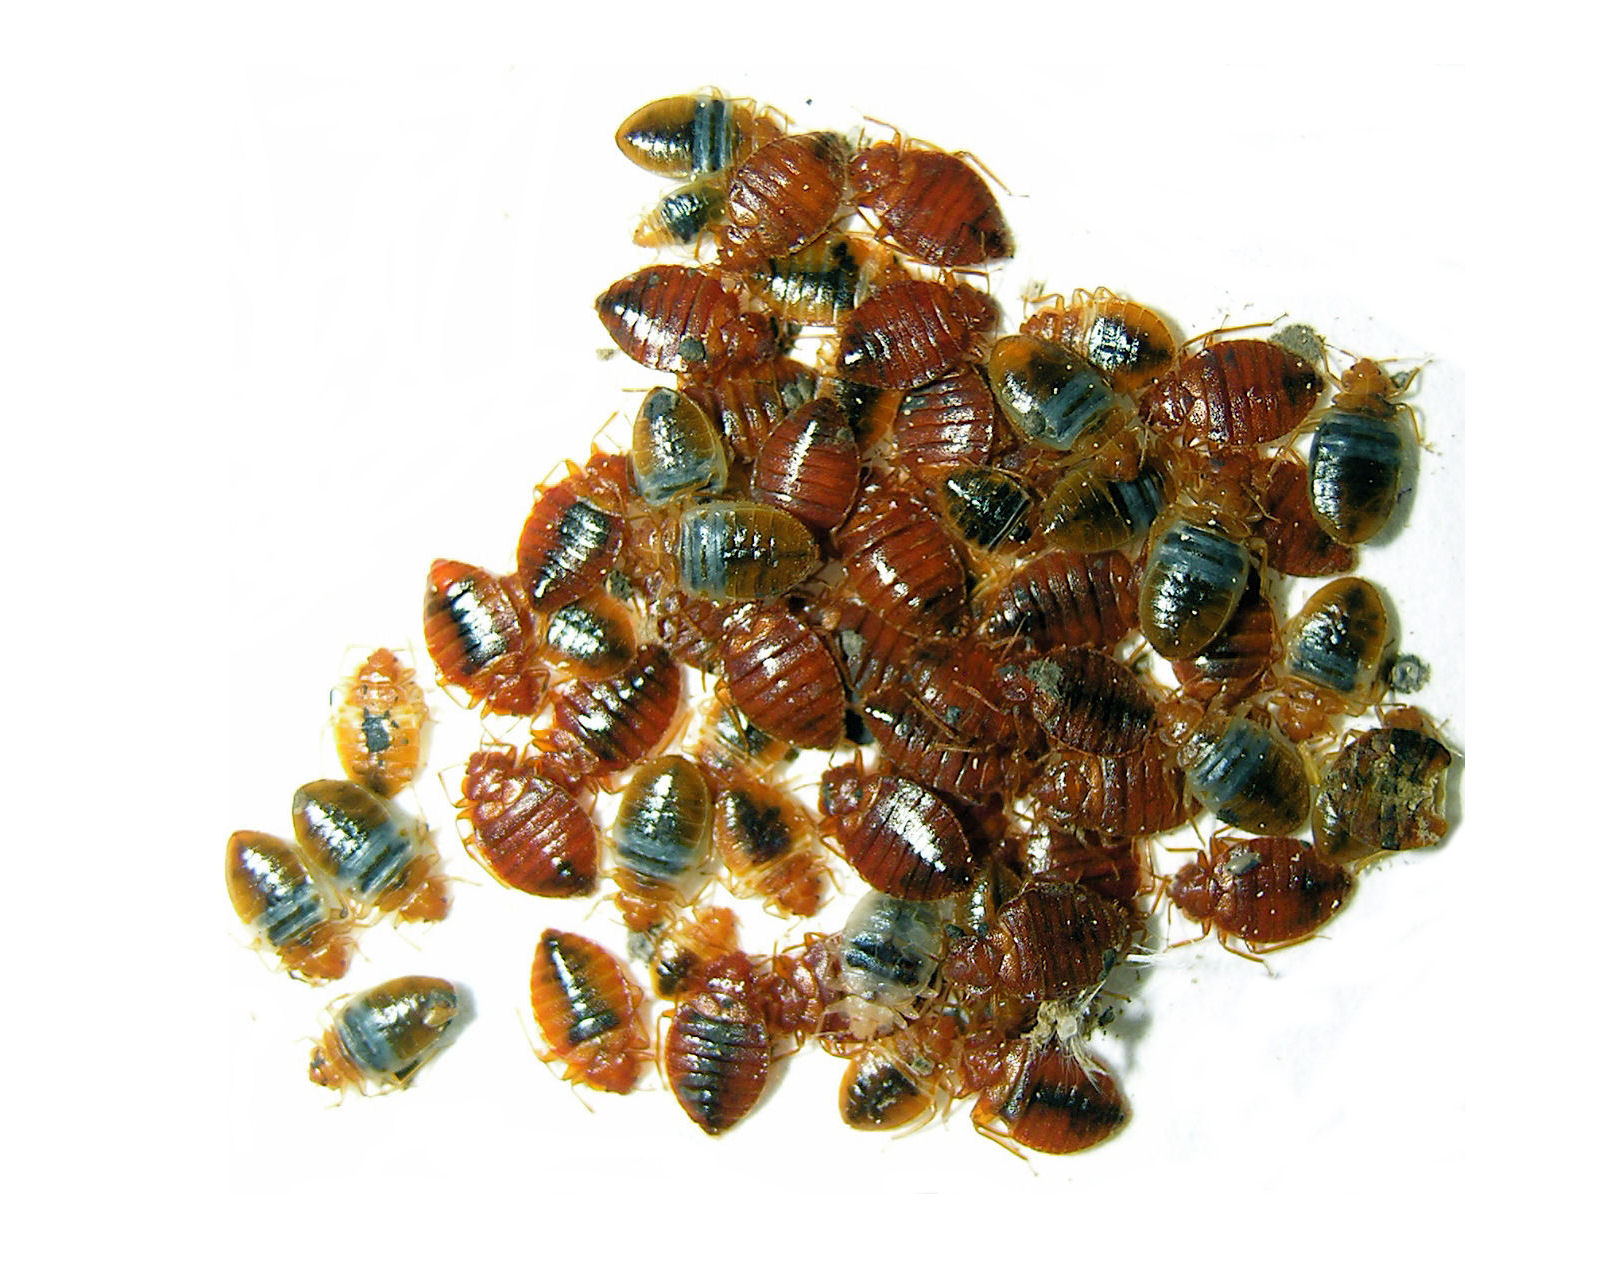 Engorged Bed Bugs